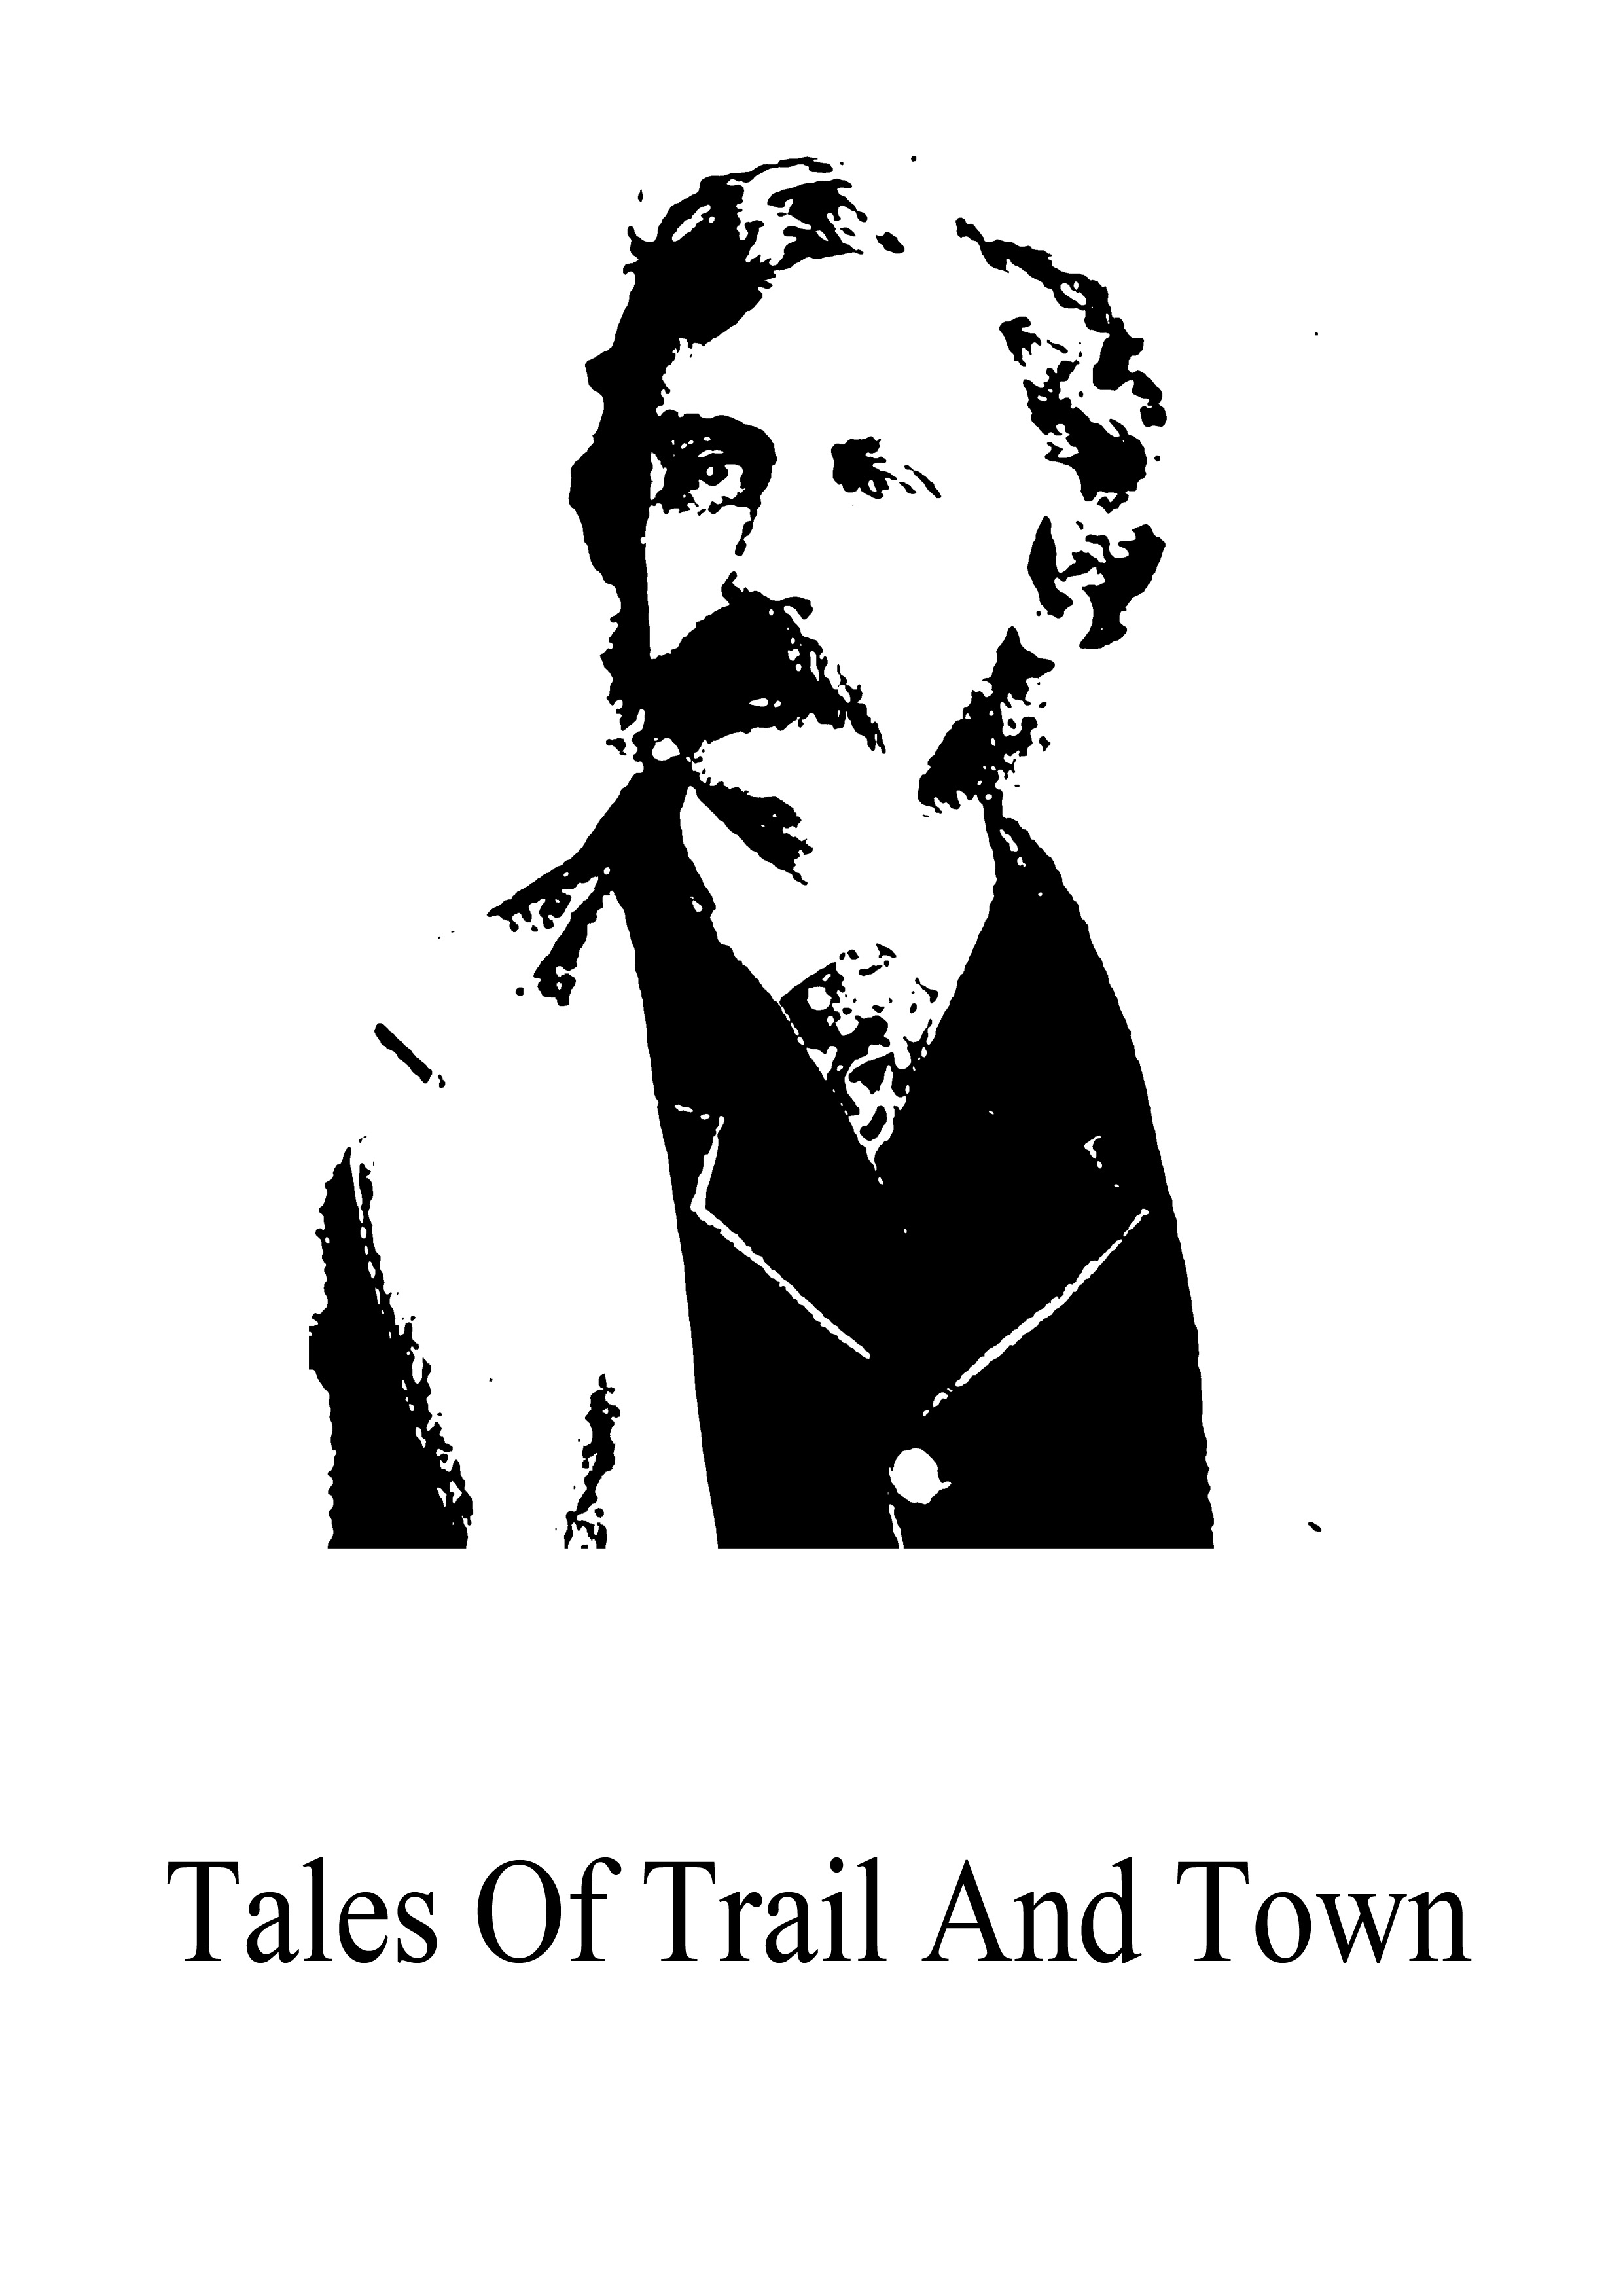 Bret Harte - Tales Of Trail And Town